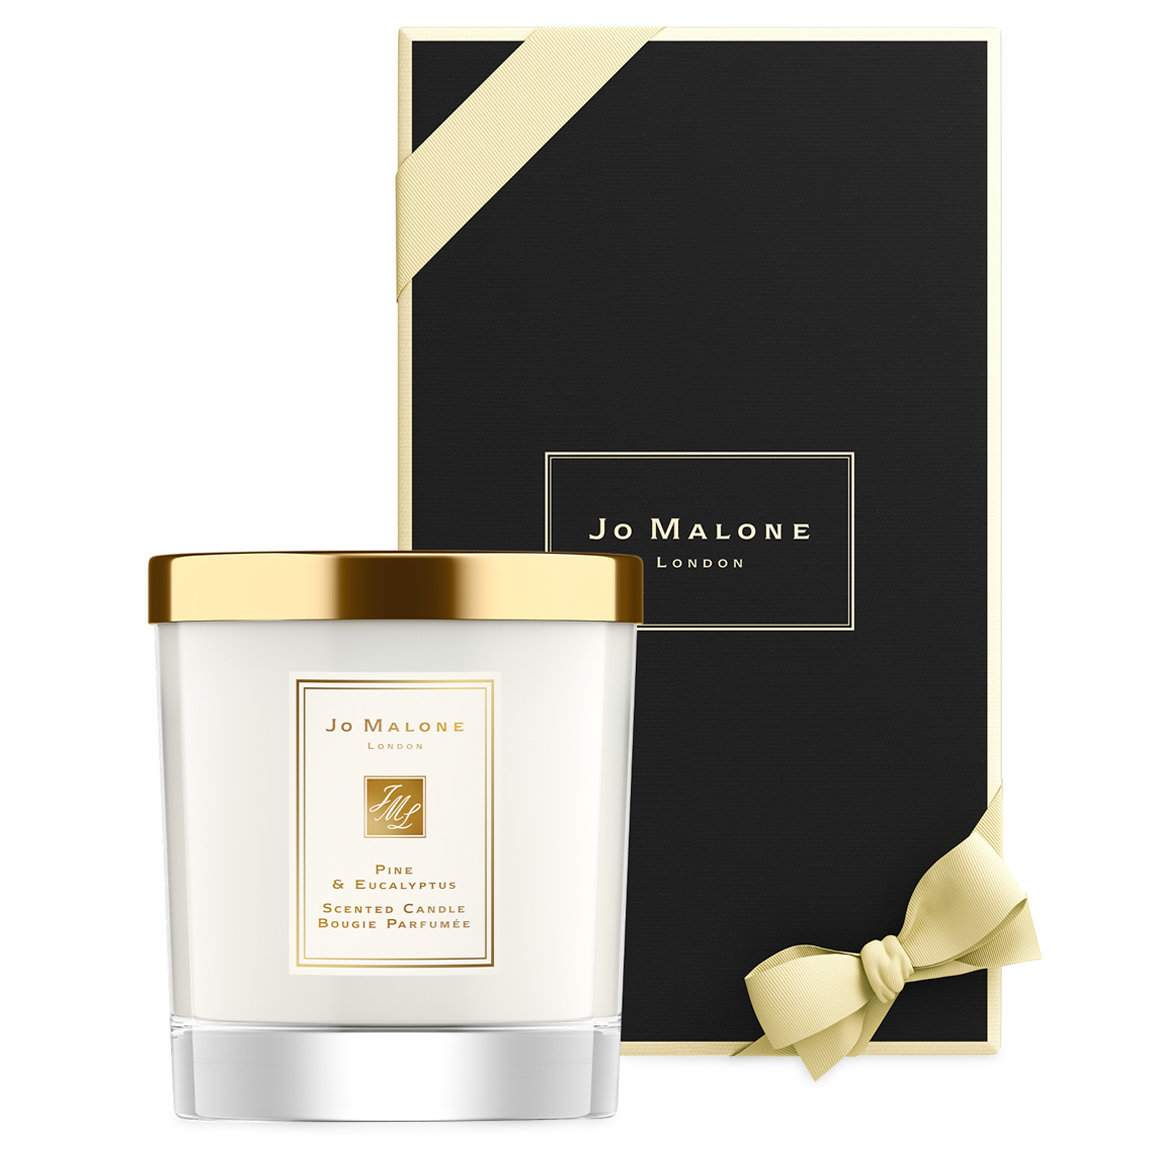 Jo Malone London Pine & Eucalyptus Home Candle product swatch.